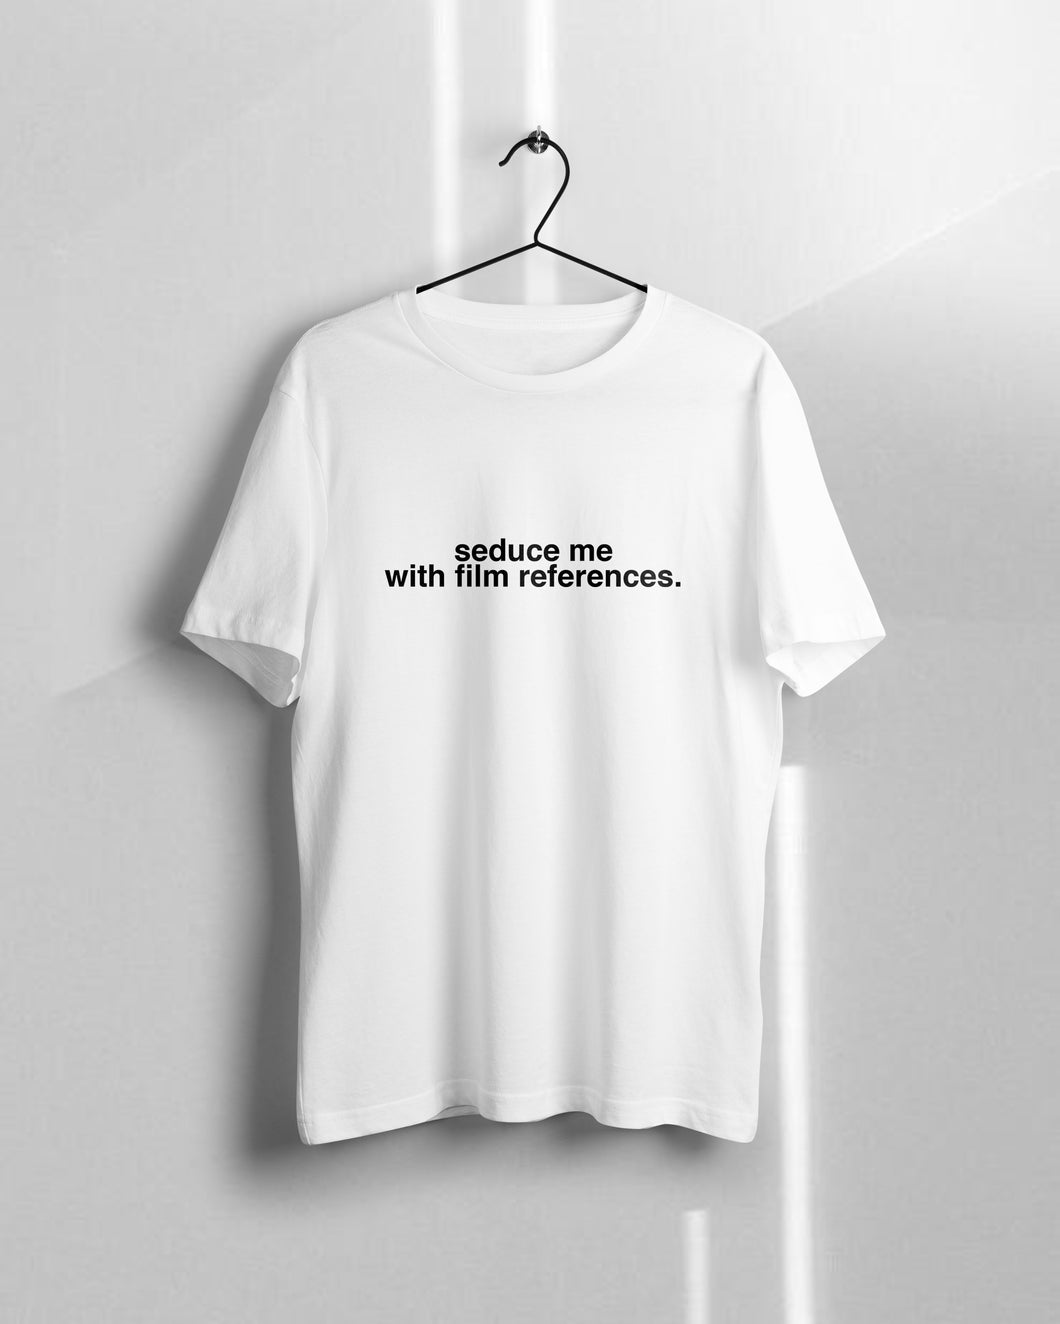 Seduce Me With Film References T-shirt - KILSHEE Co.